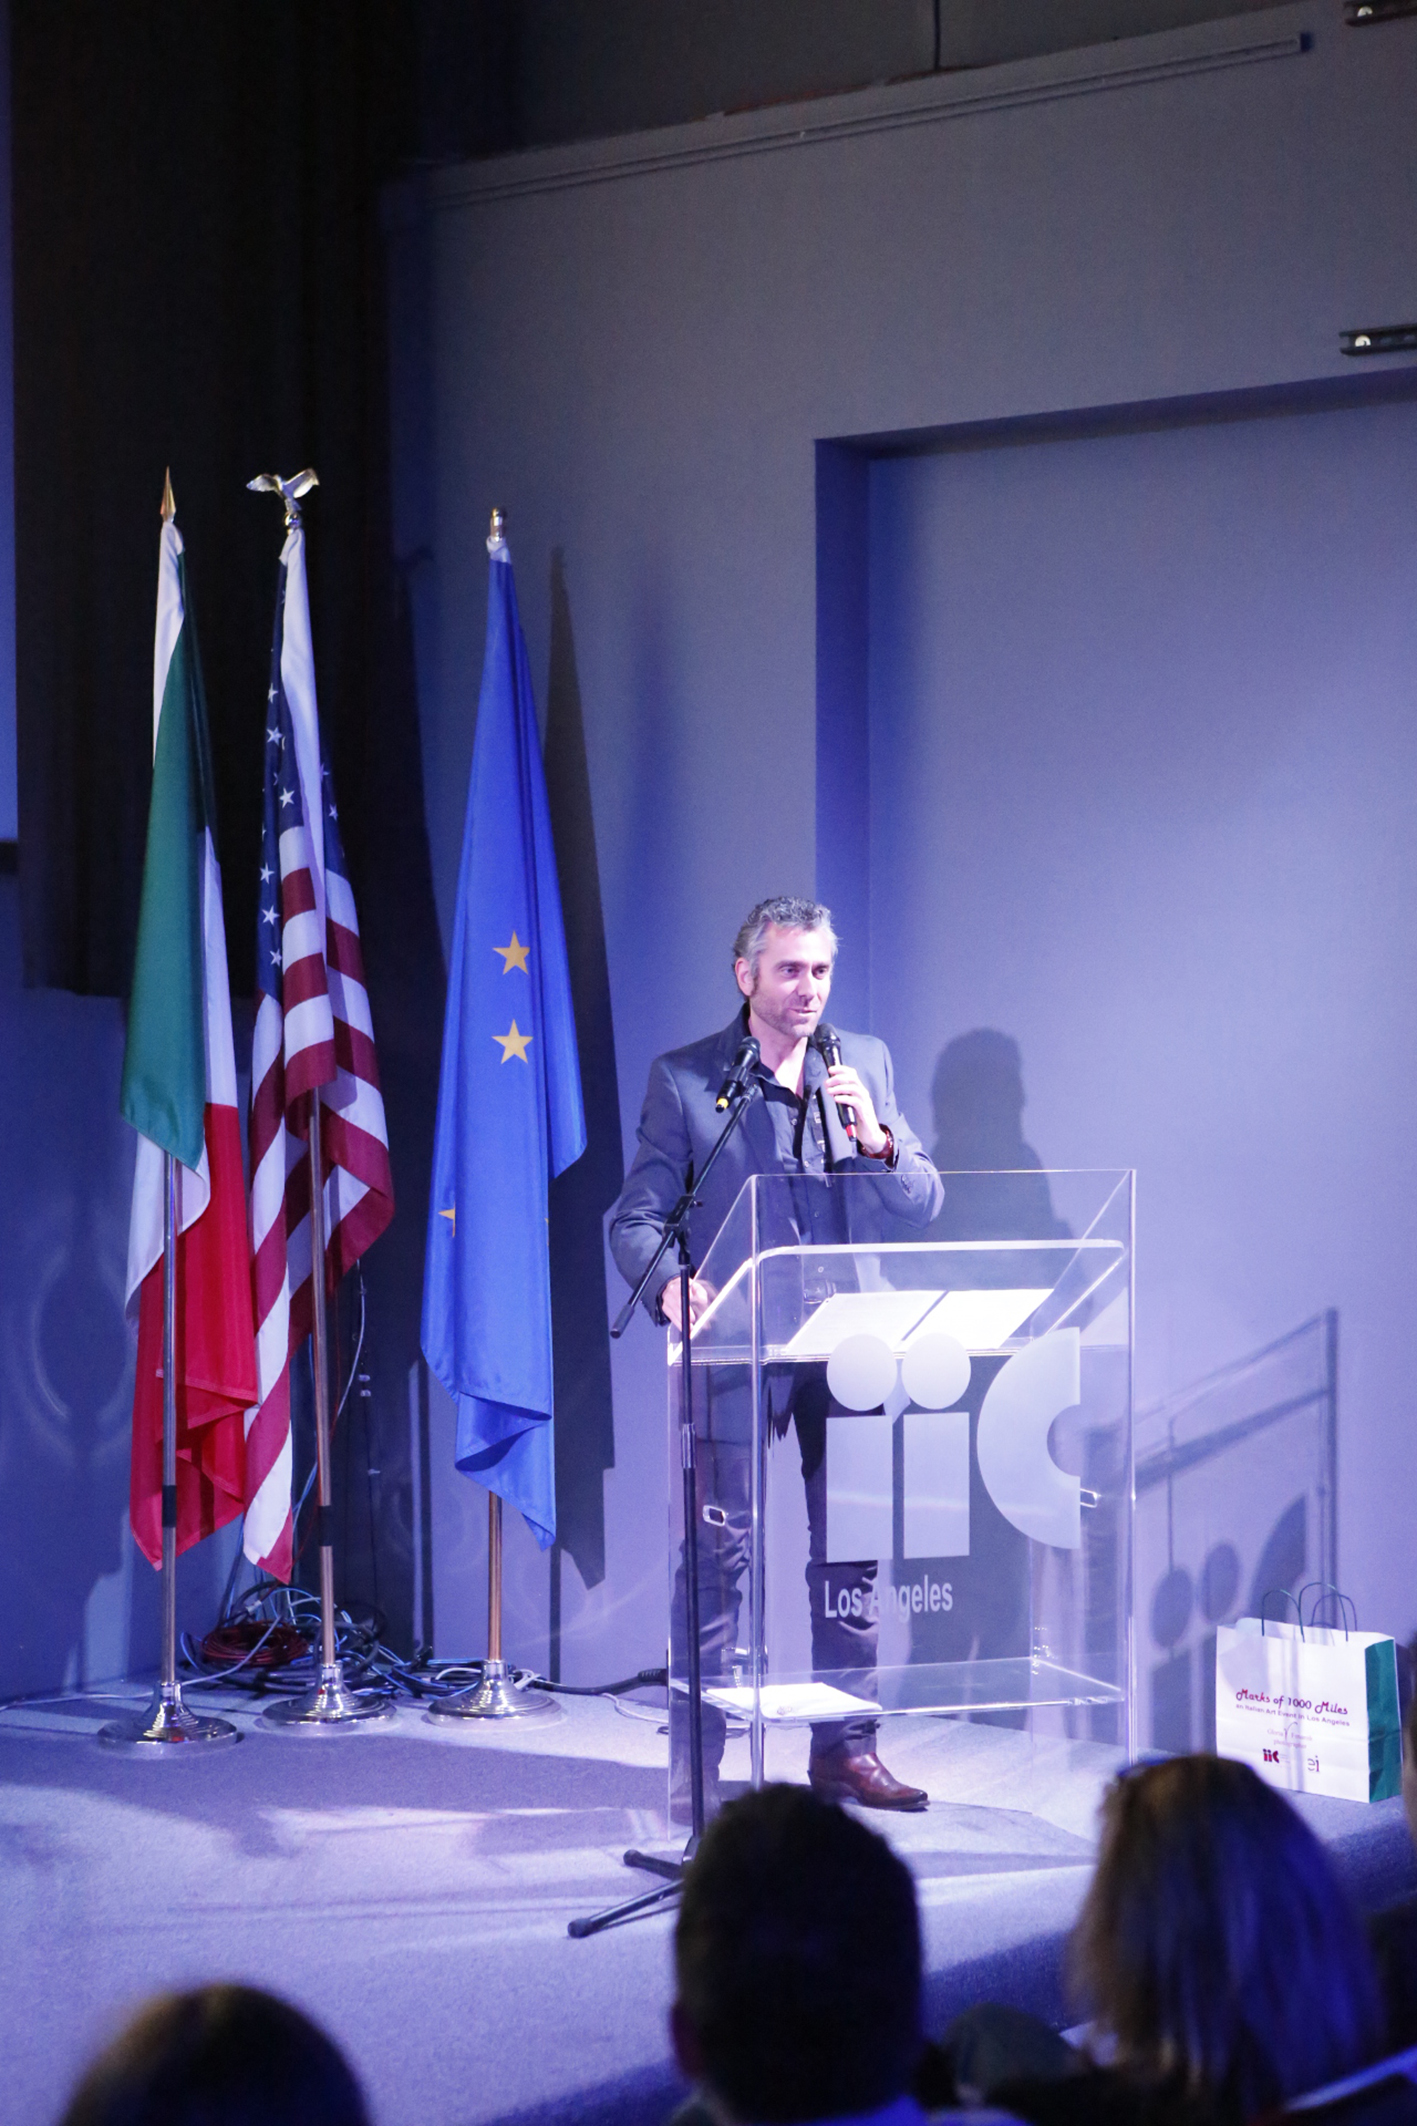 Max Leonida, during his speech at the Italian Cultural Institute of L.A.